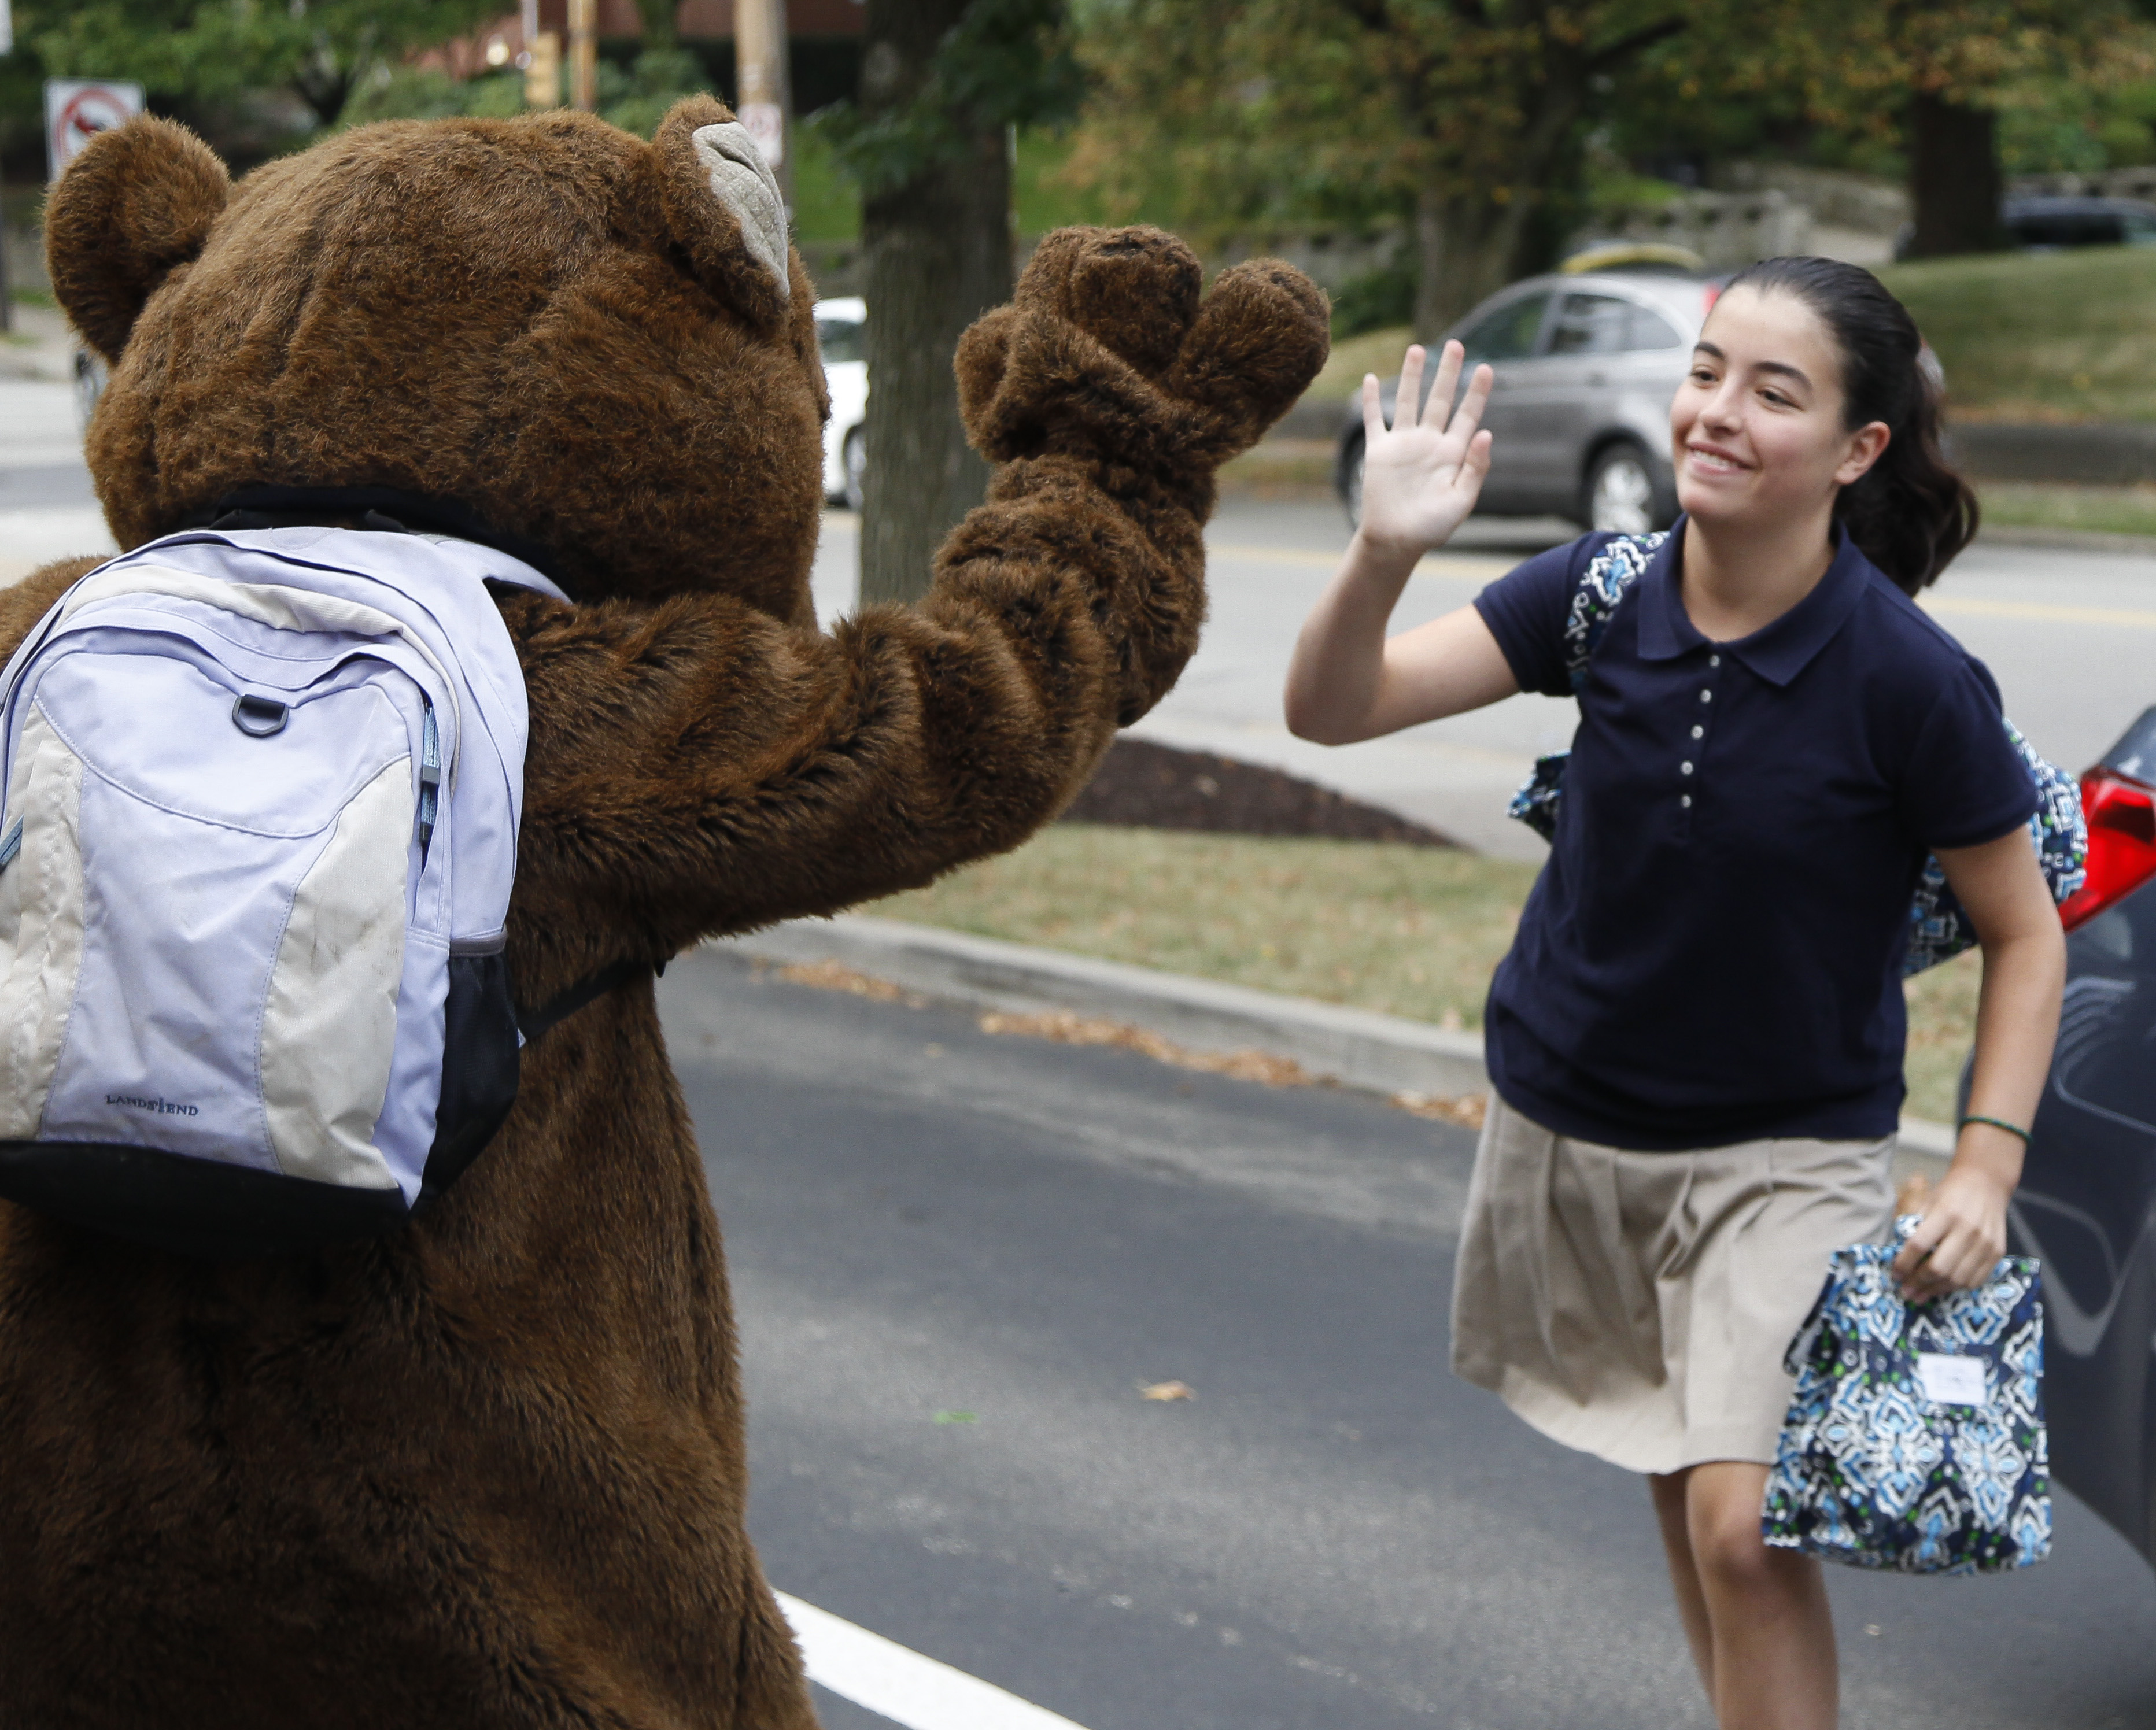 WT mascot giving student high-five